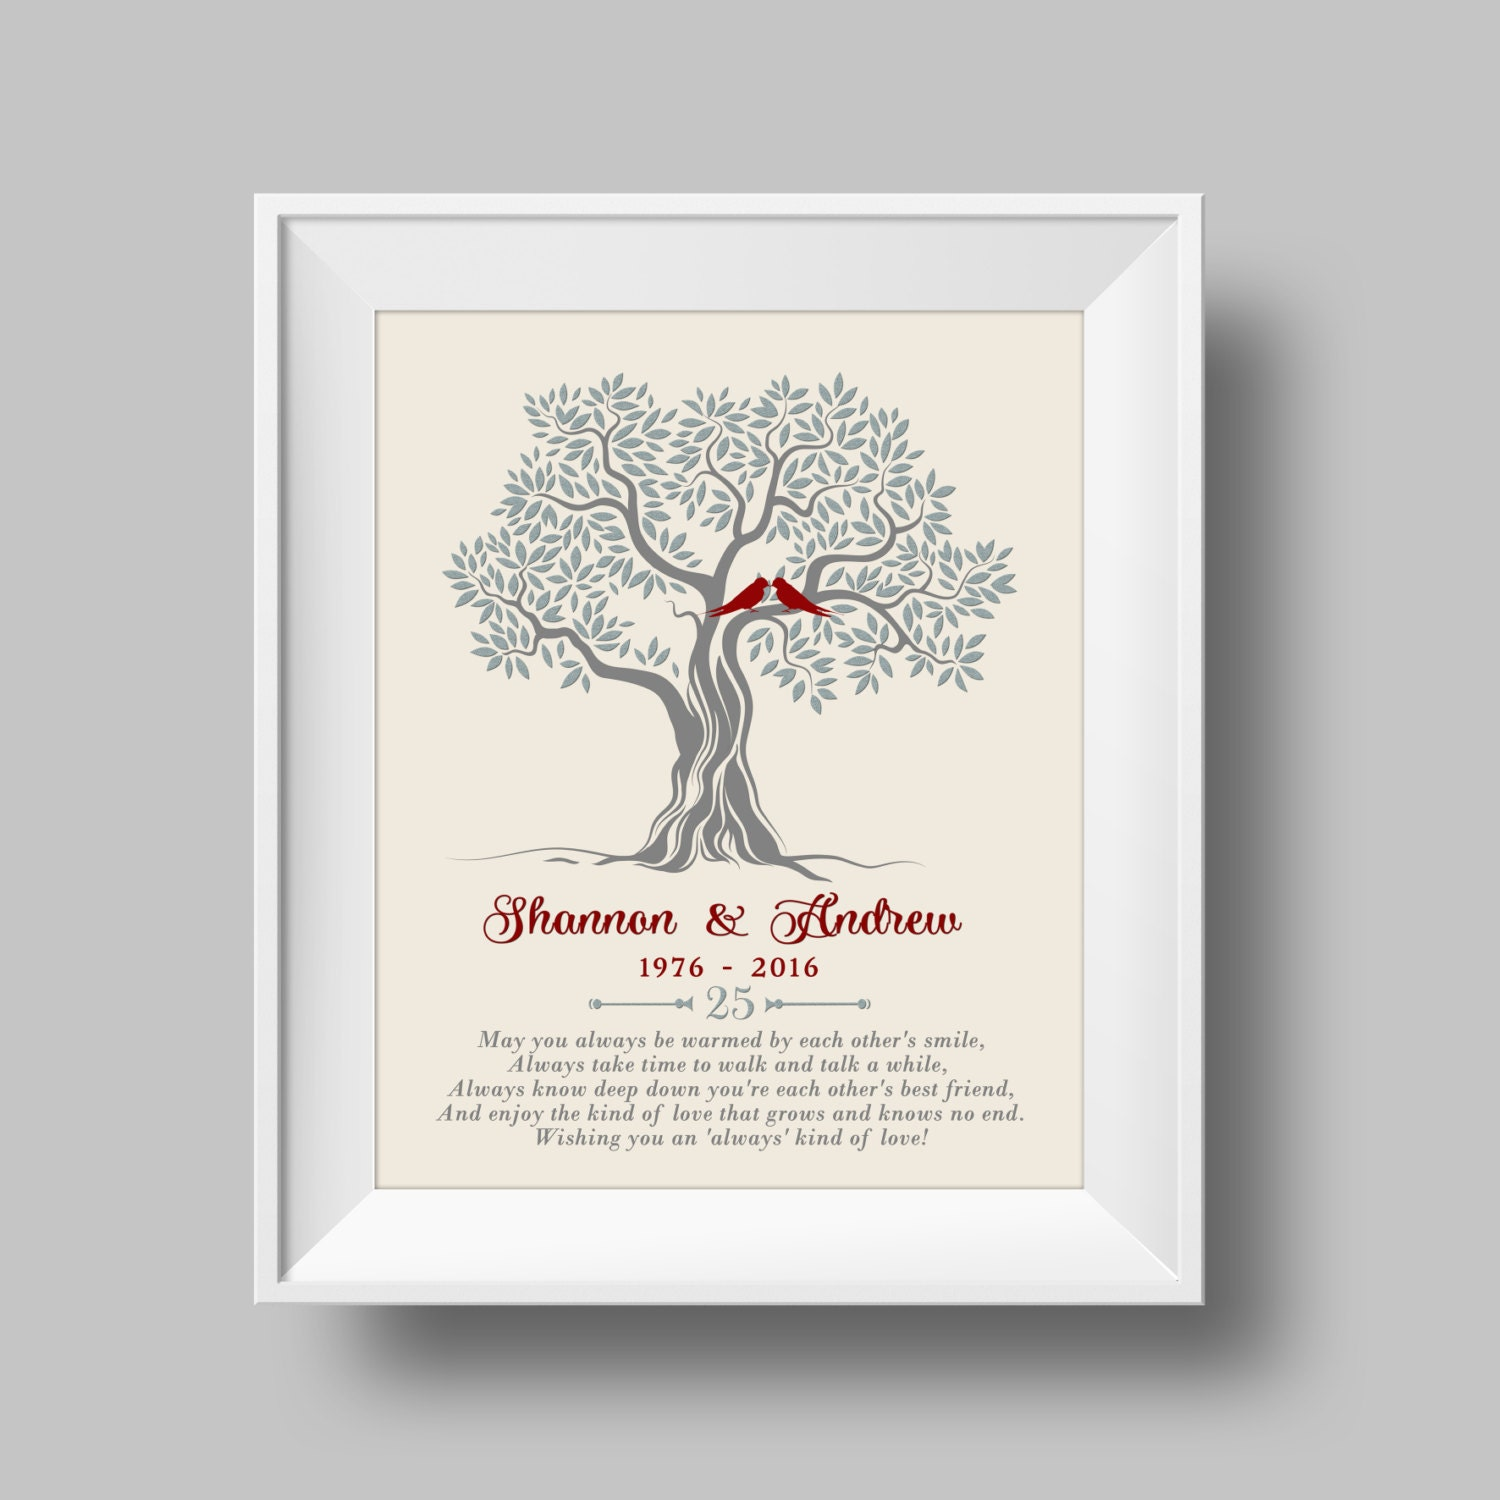 Australian Wedding Anniversary Gifts By Year: 25th Anniversary Gift For Parents 25th Wedding Anniversary